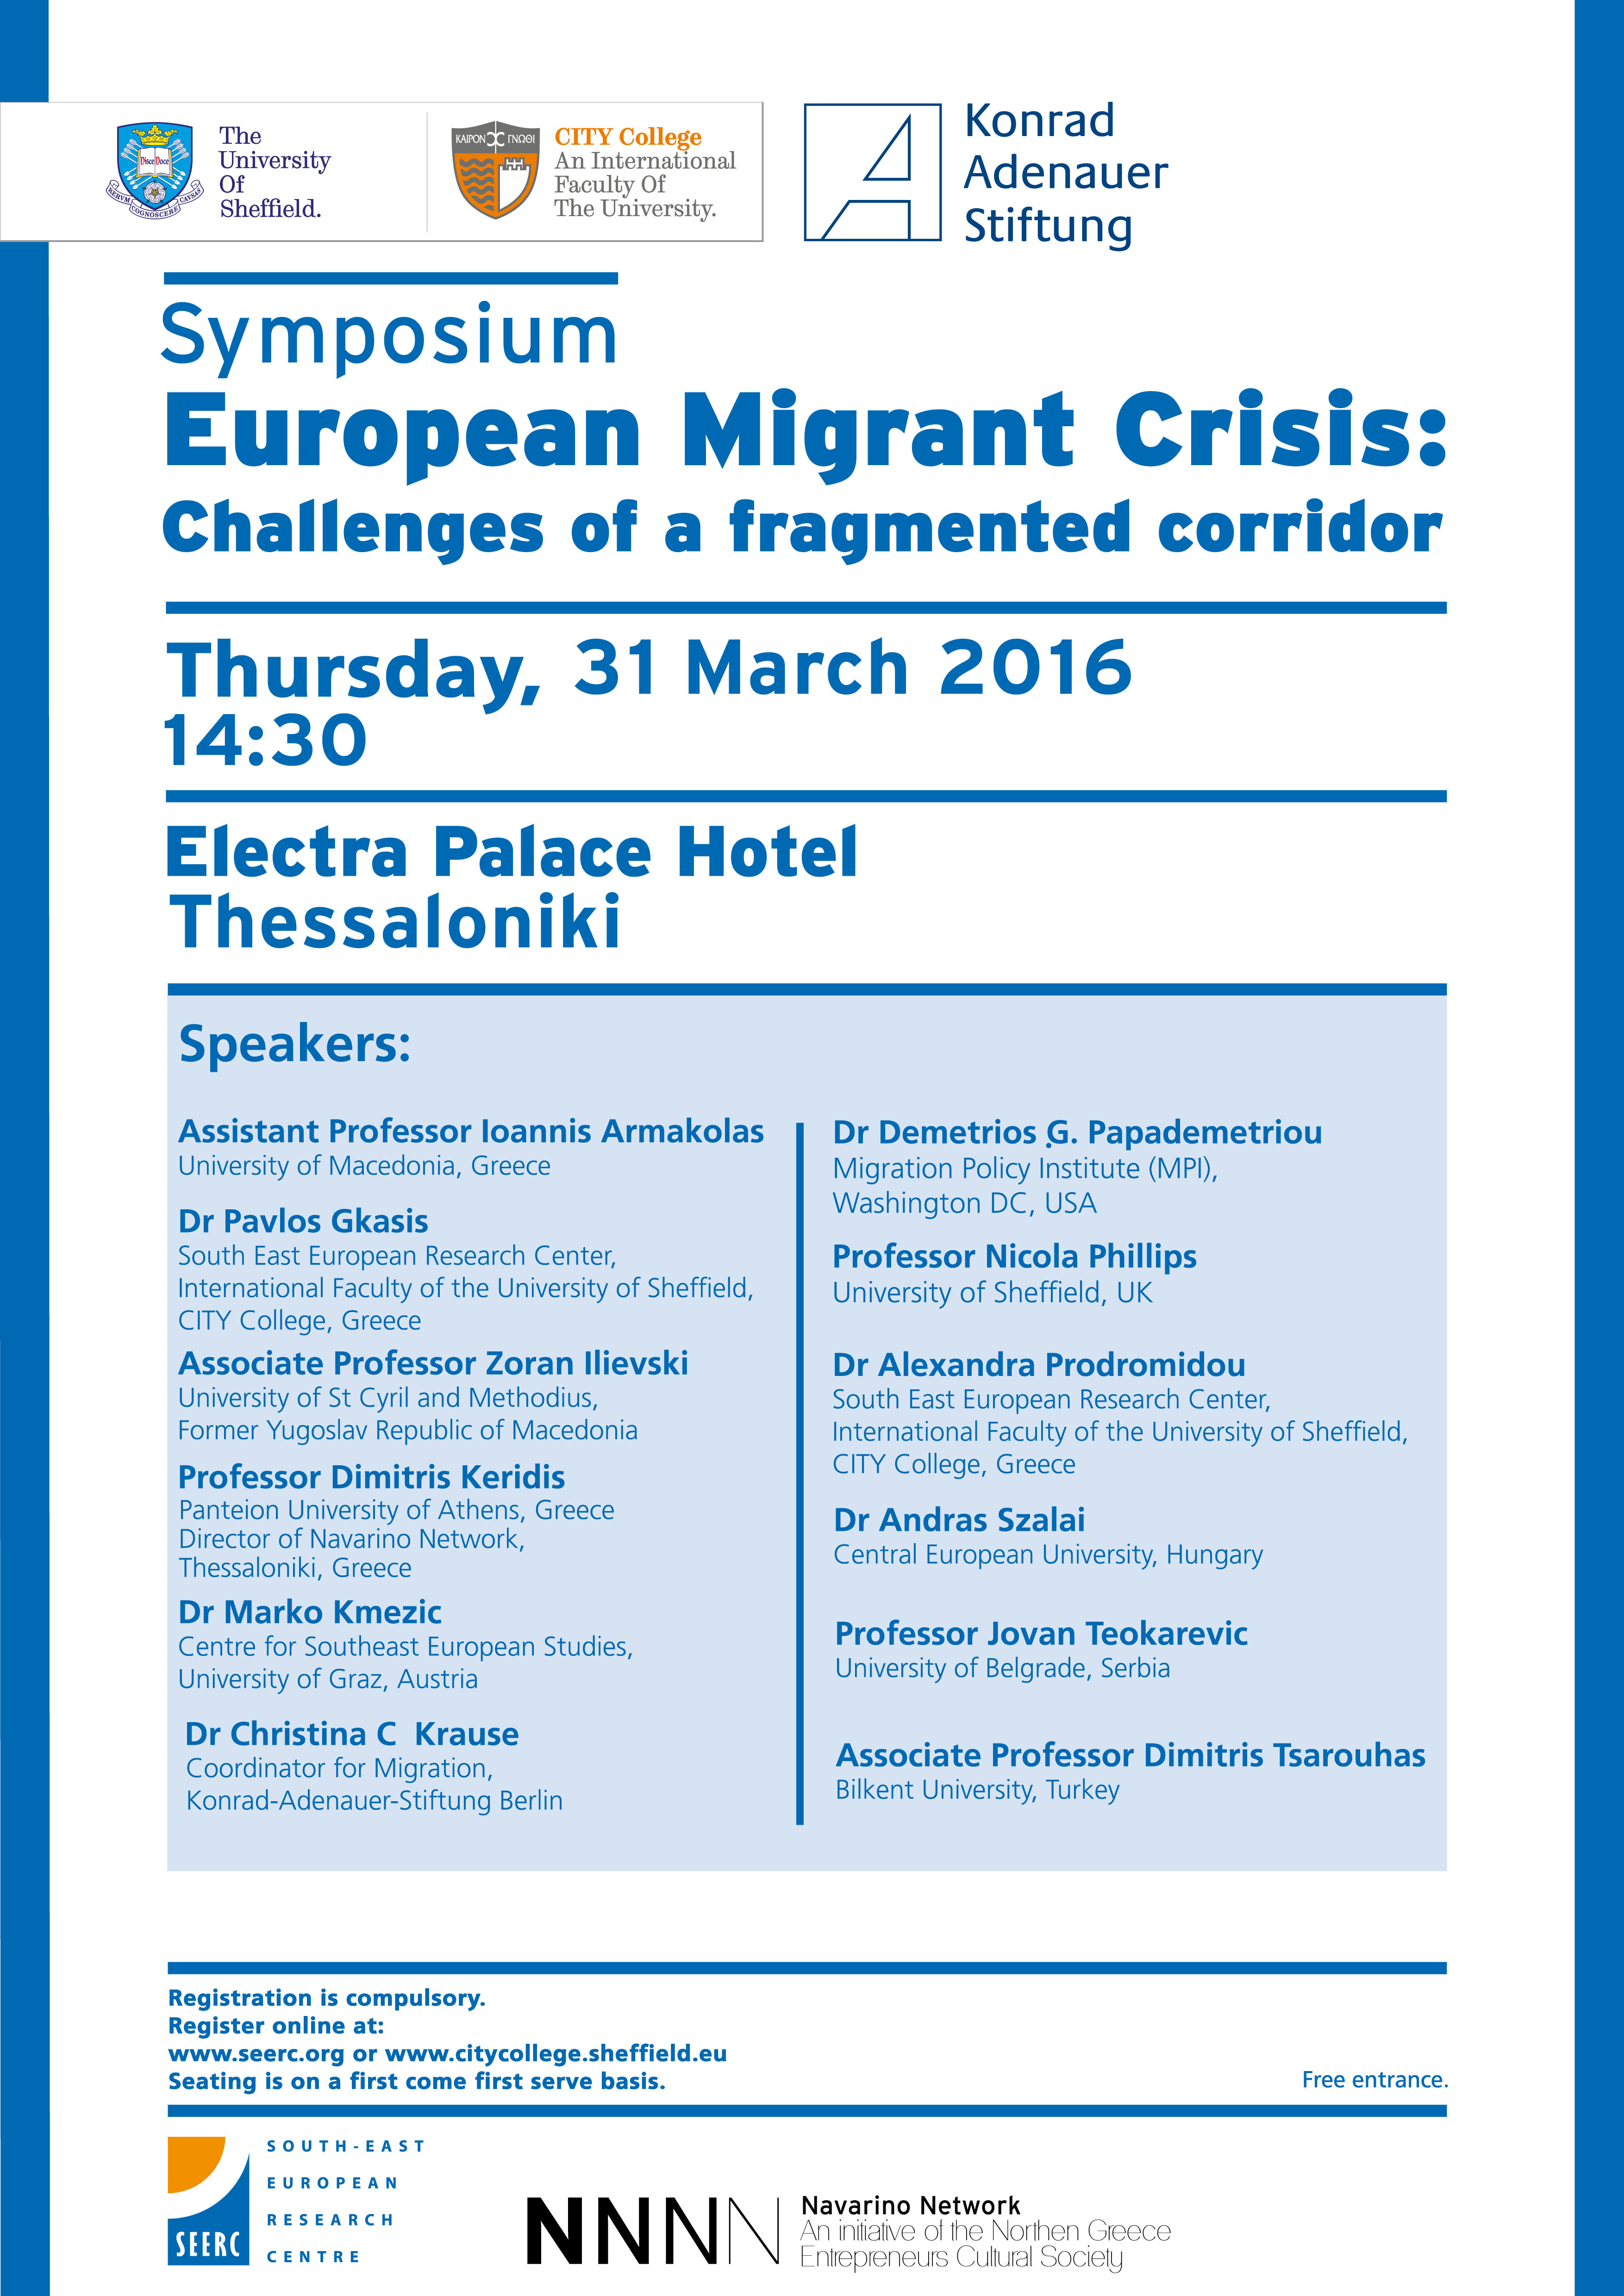 Symposium: European Migrant Crisis: Challenges of a fragmented corridor_Proceedings Links